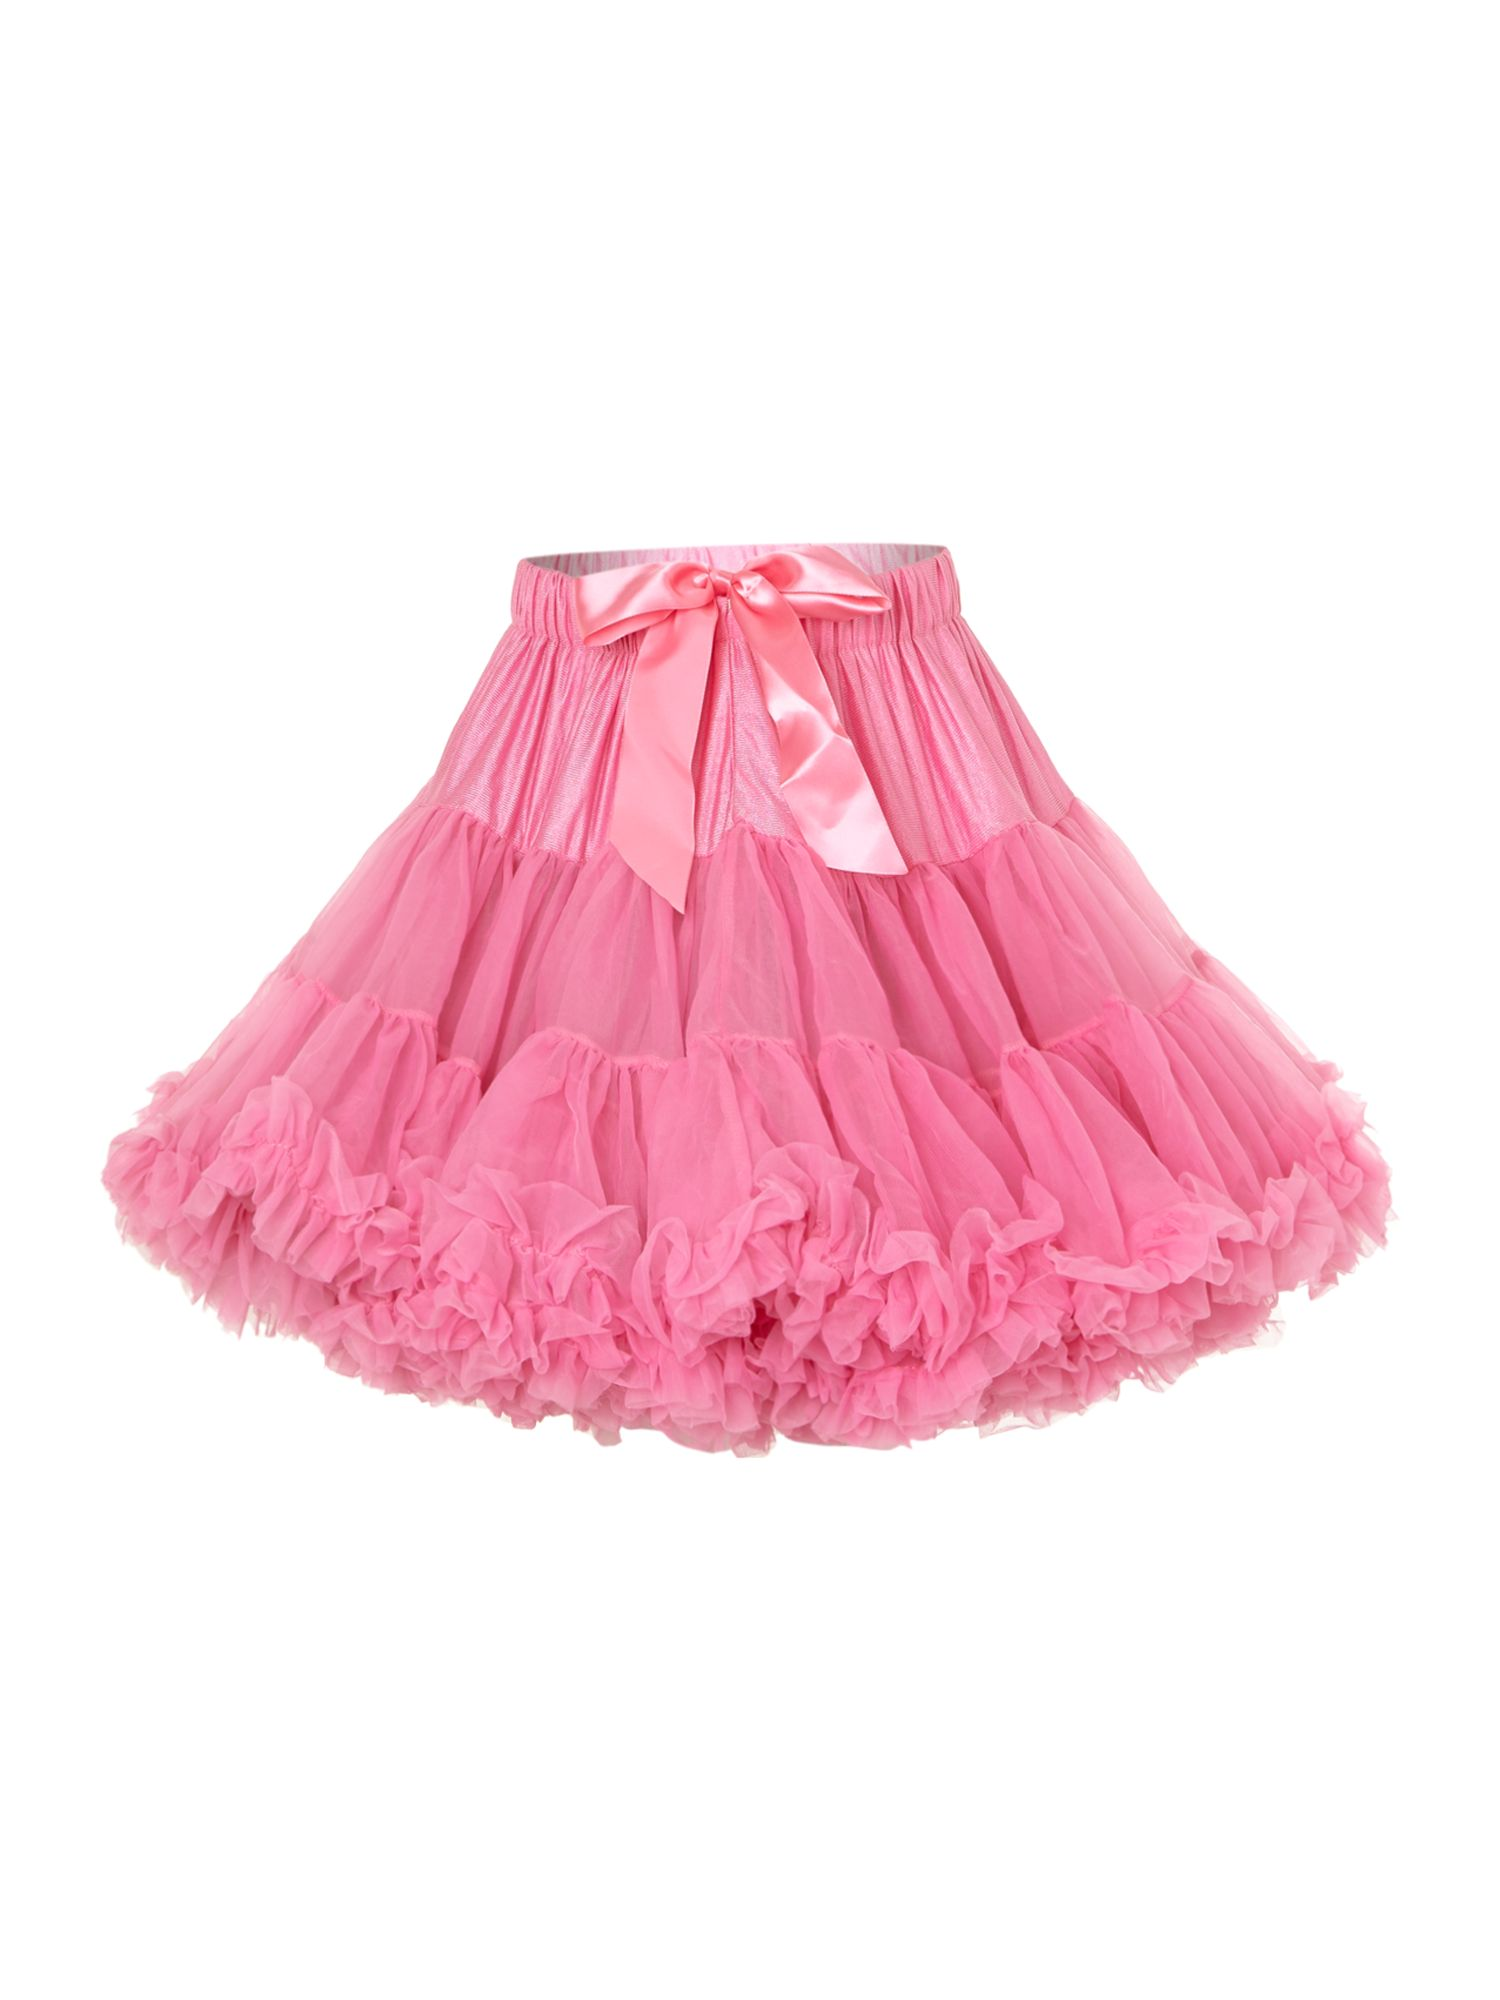 Girls layered tutu skirt with gift box